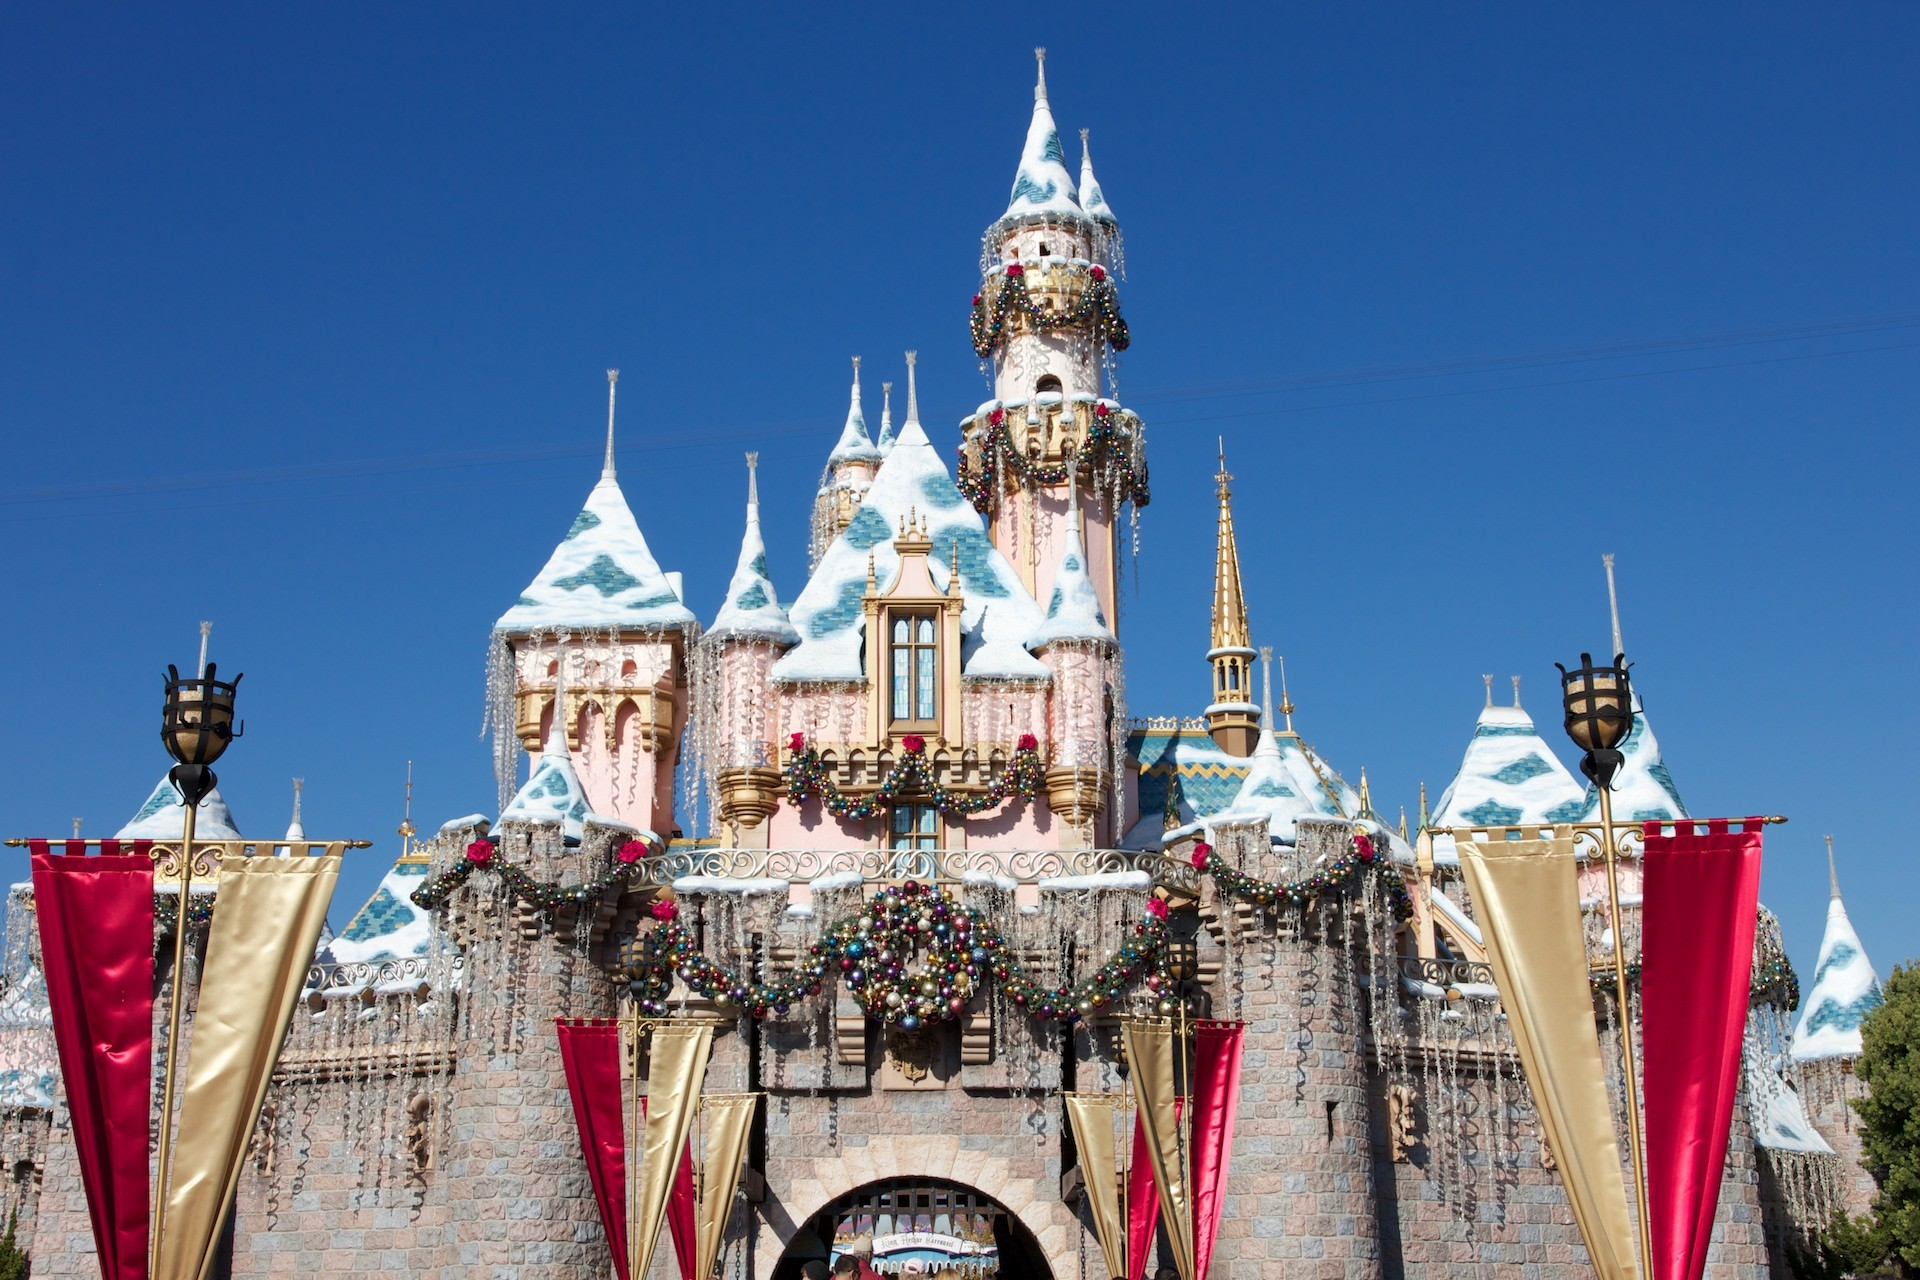 1920x1280 Sleeping Beauty castle at Disneyland decorated for Christmas wallpaper